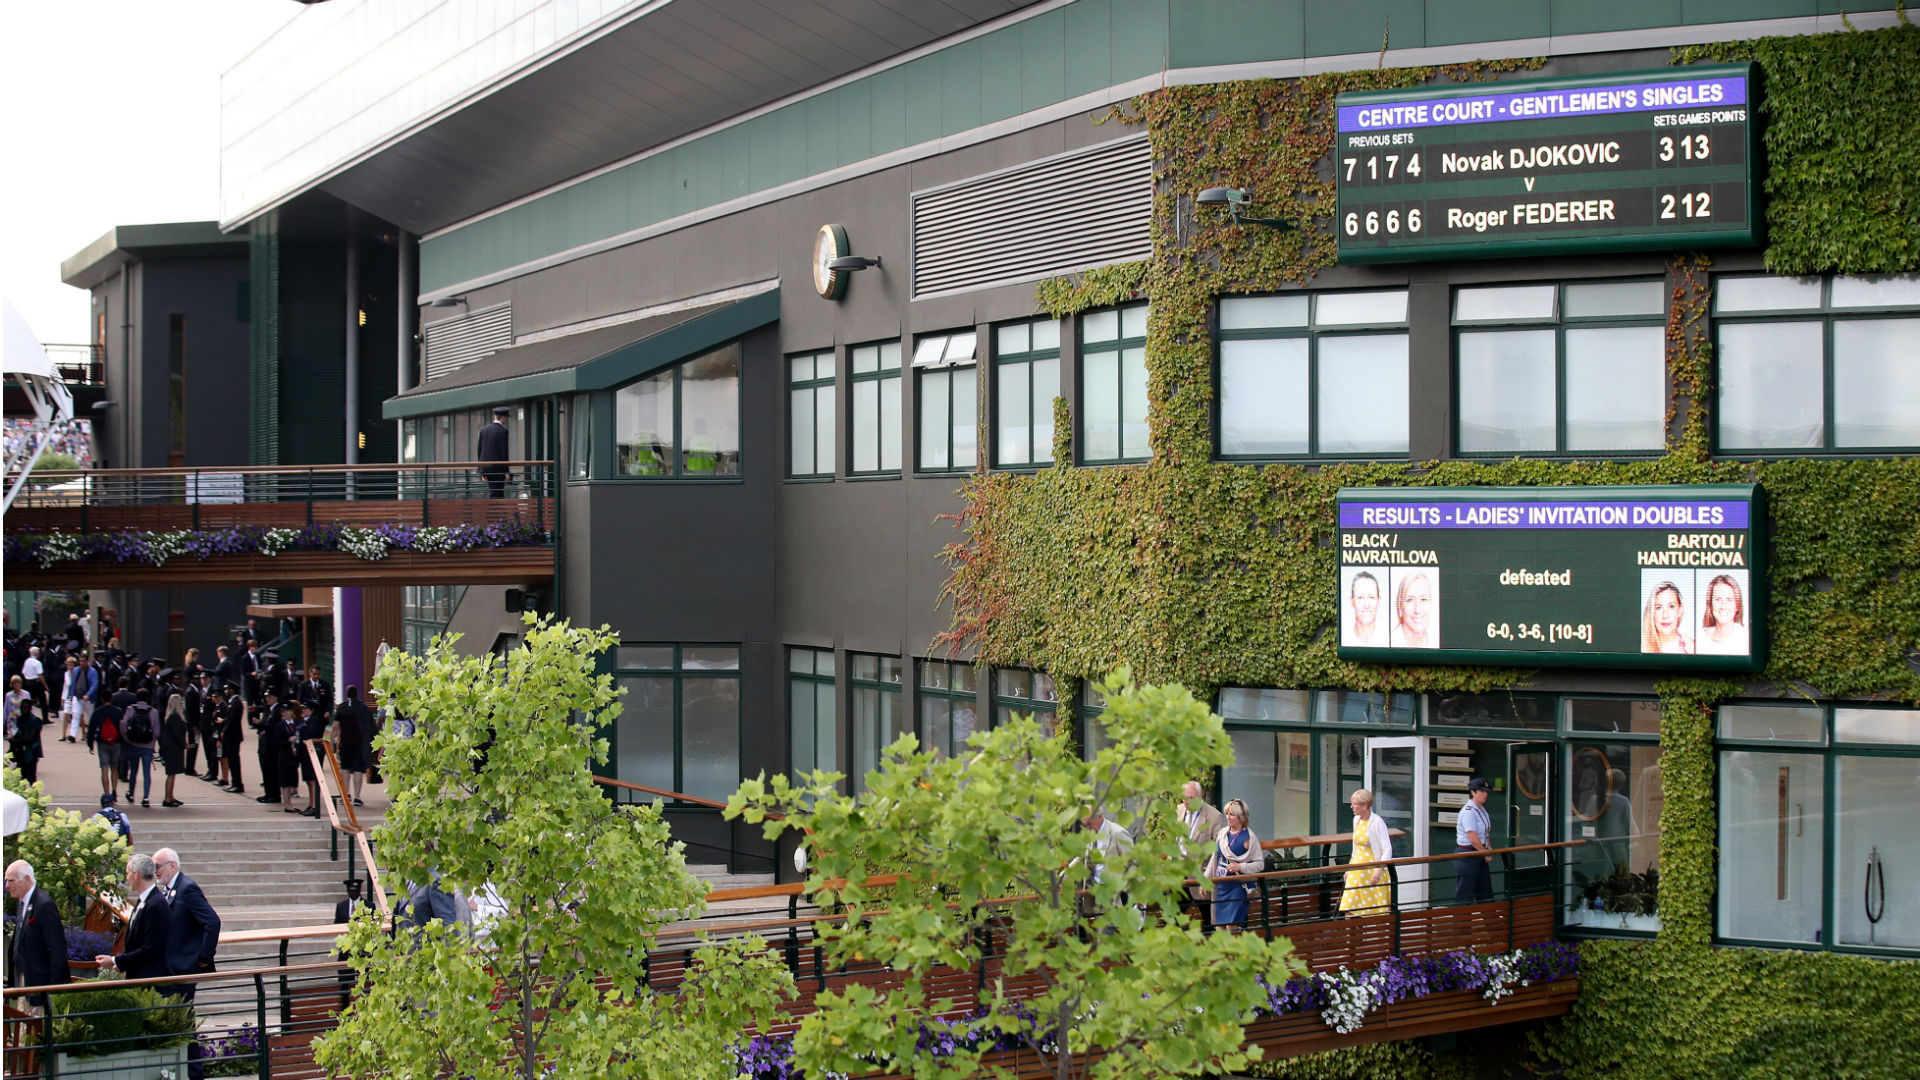 The AELTC will meet next week to decide what to do with Wimbledon, though it will not be played behind closed doors.